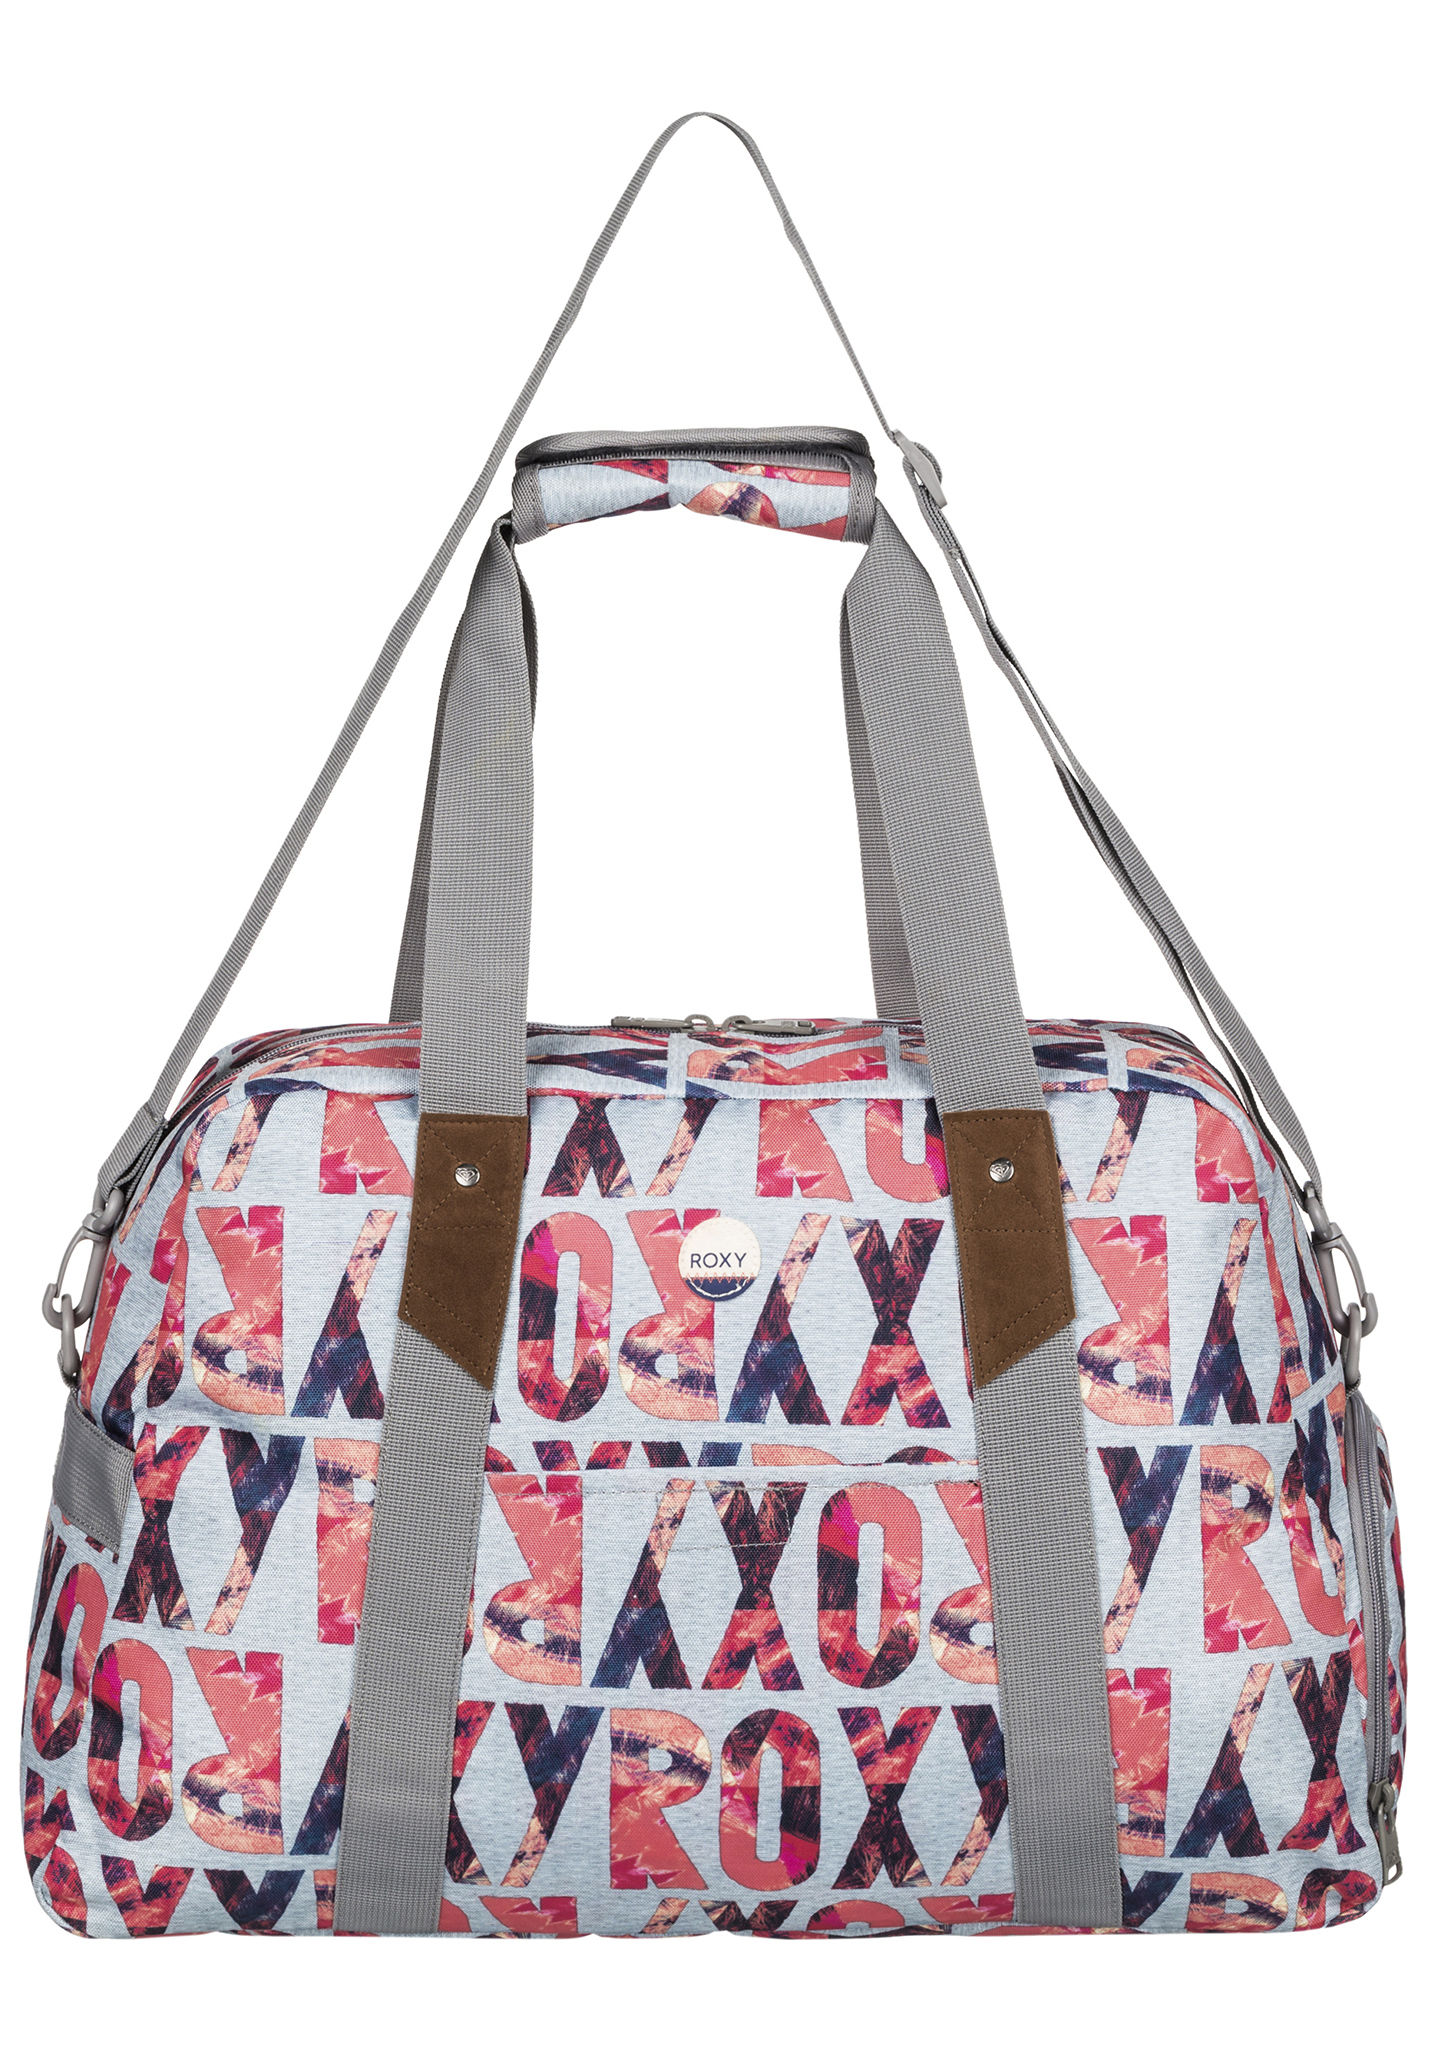 Sugar It Up - Tasche für Damen - Grau Roxy uvFORbQtPh